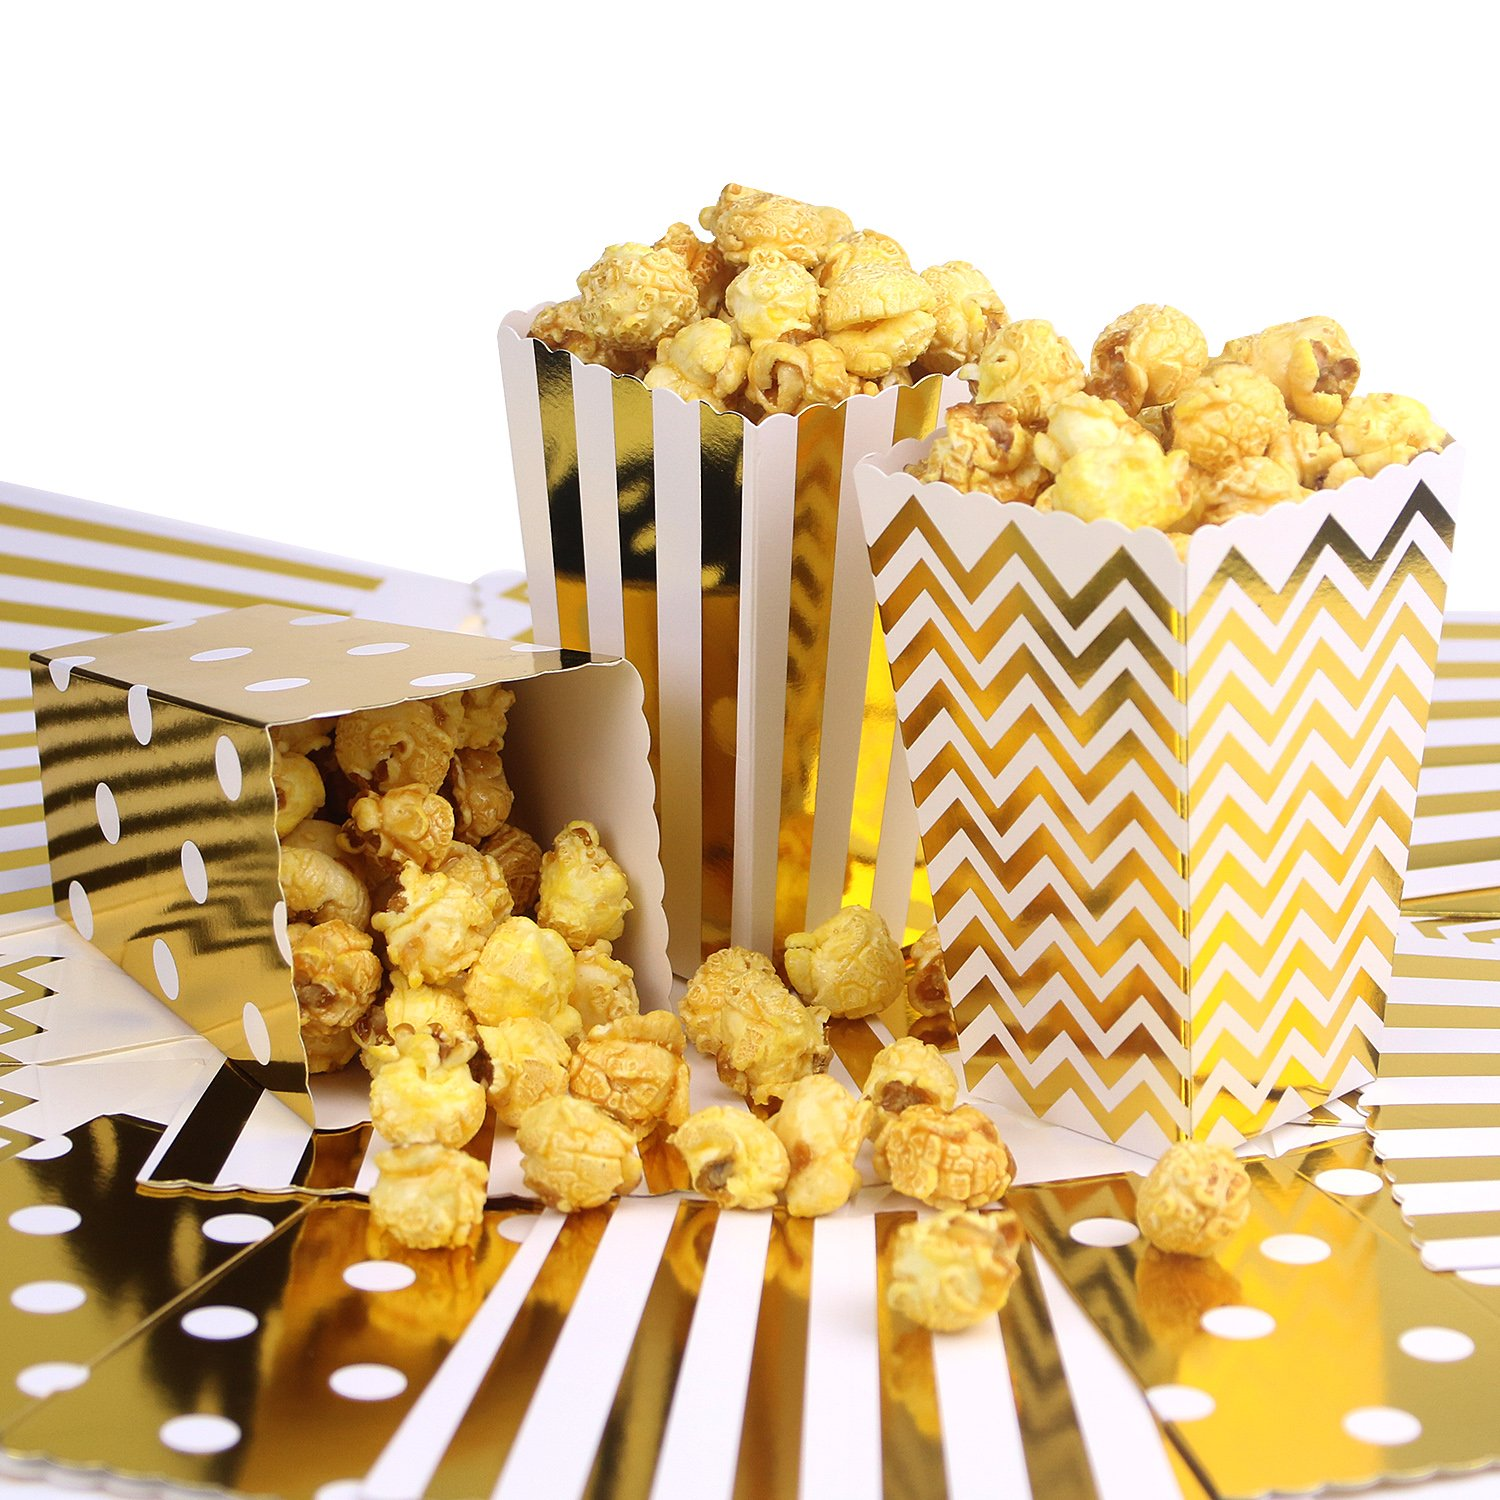 Simla Decor 36pcs Gold Popcorn Boxes Favor Boxes Bakery Box for Treats Birthday Party Bridal Shower Movie Night Sleepover Party Baby Shower in Chevron Stripe and Polka Dot